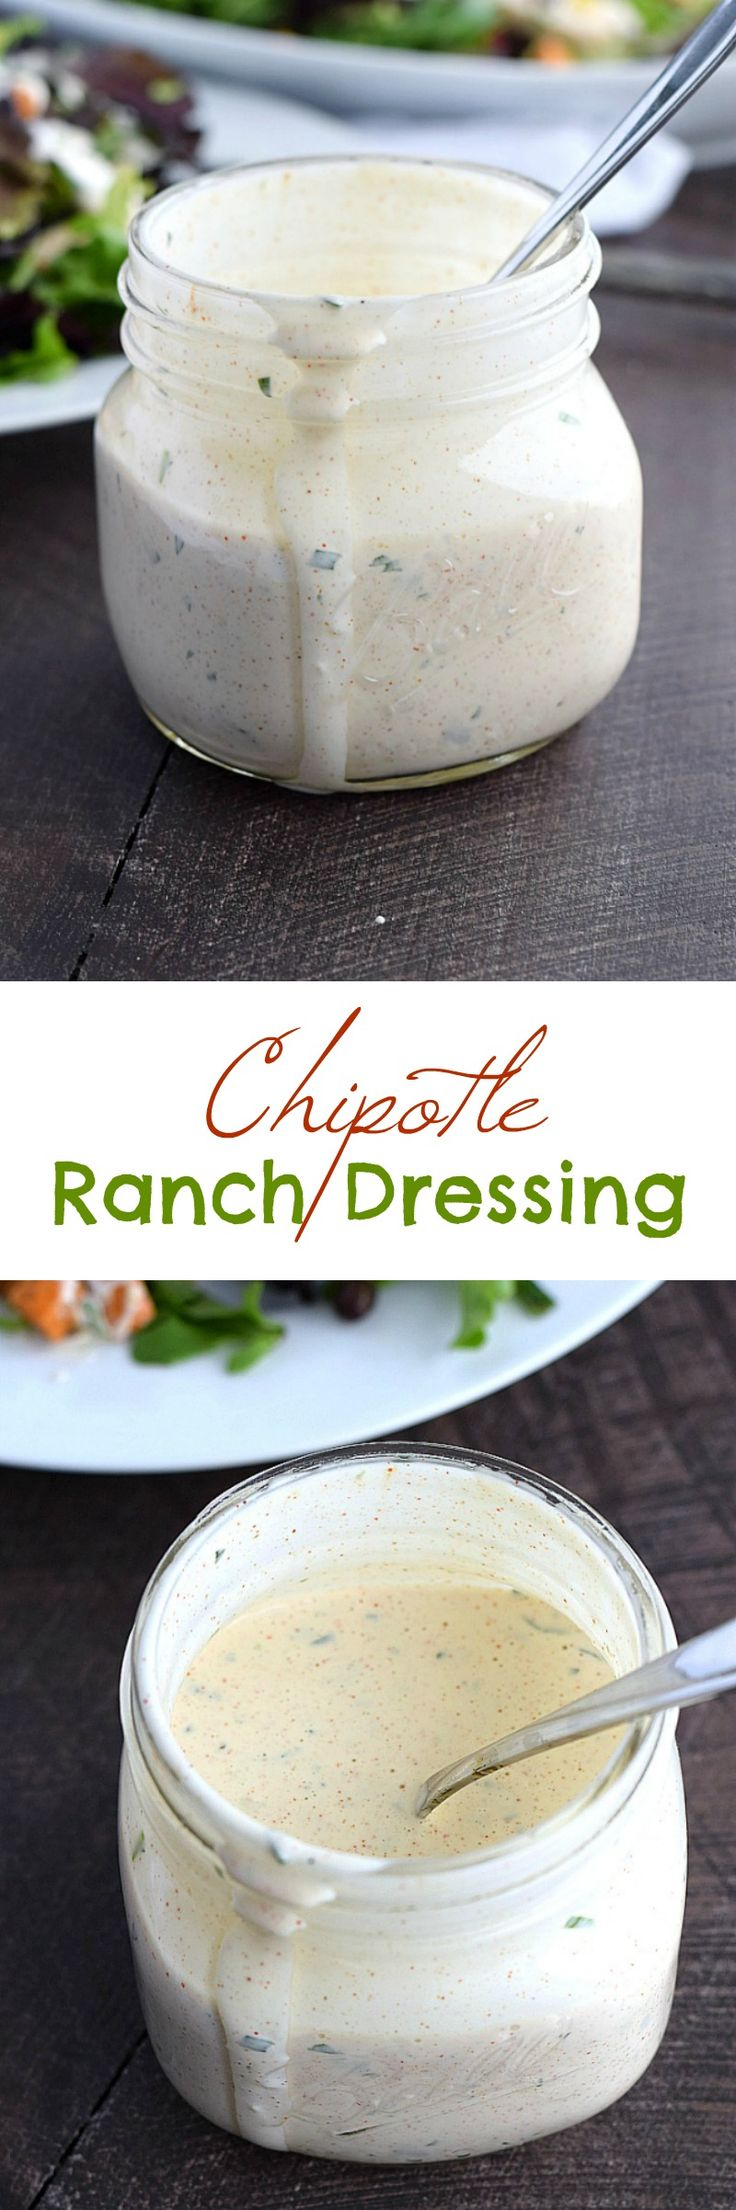 Make your salad come alive with this creamy and delicious Chipotle Ranch Dressing with instructions for dairy-free included | cookingwithcurls.com